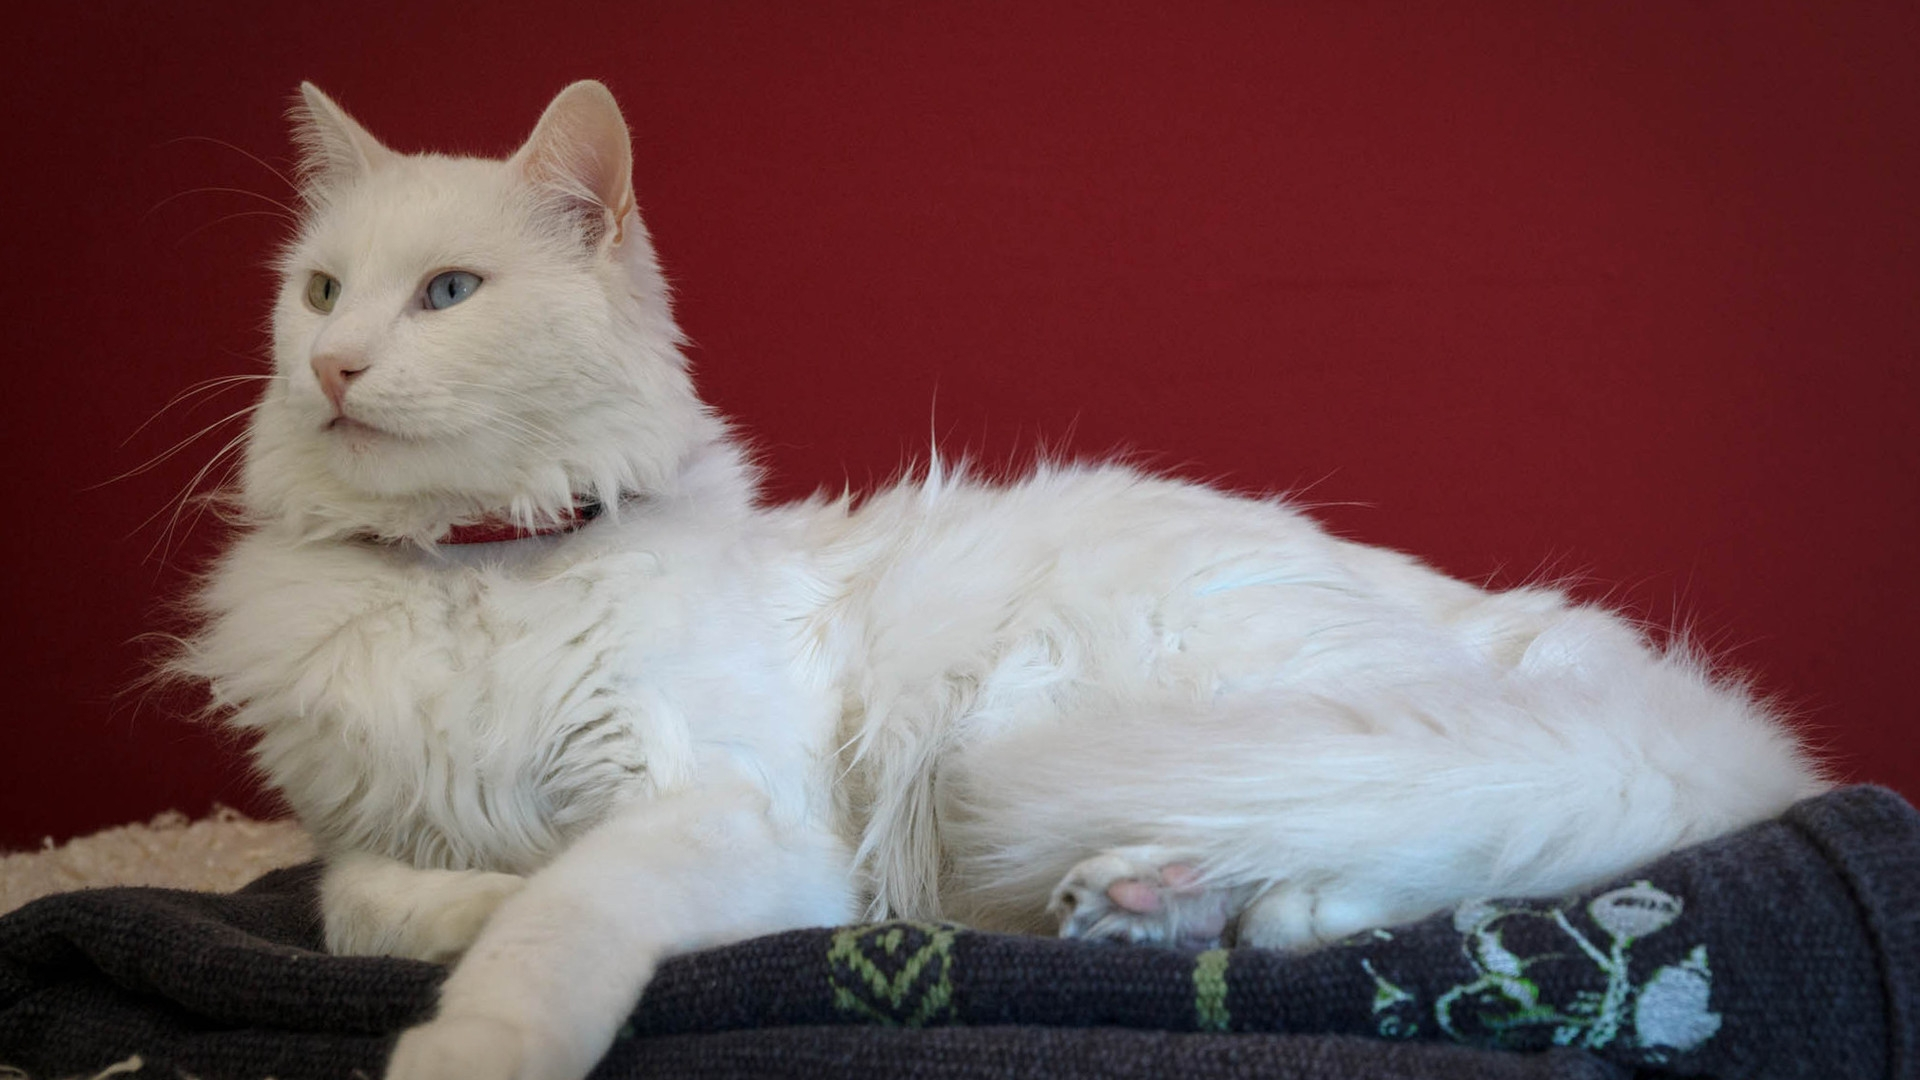 Beautiful Turkish Angora Cat for 1920 x 1080 HDTV 1080p resolution